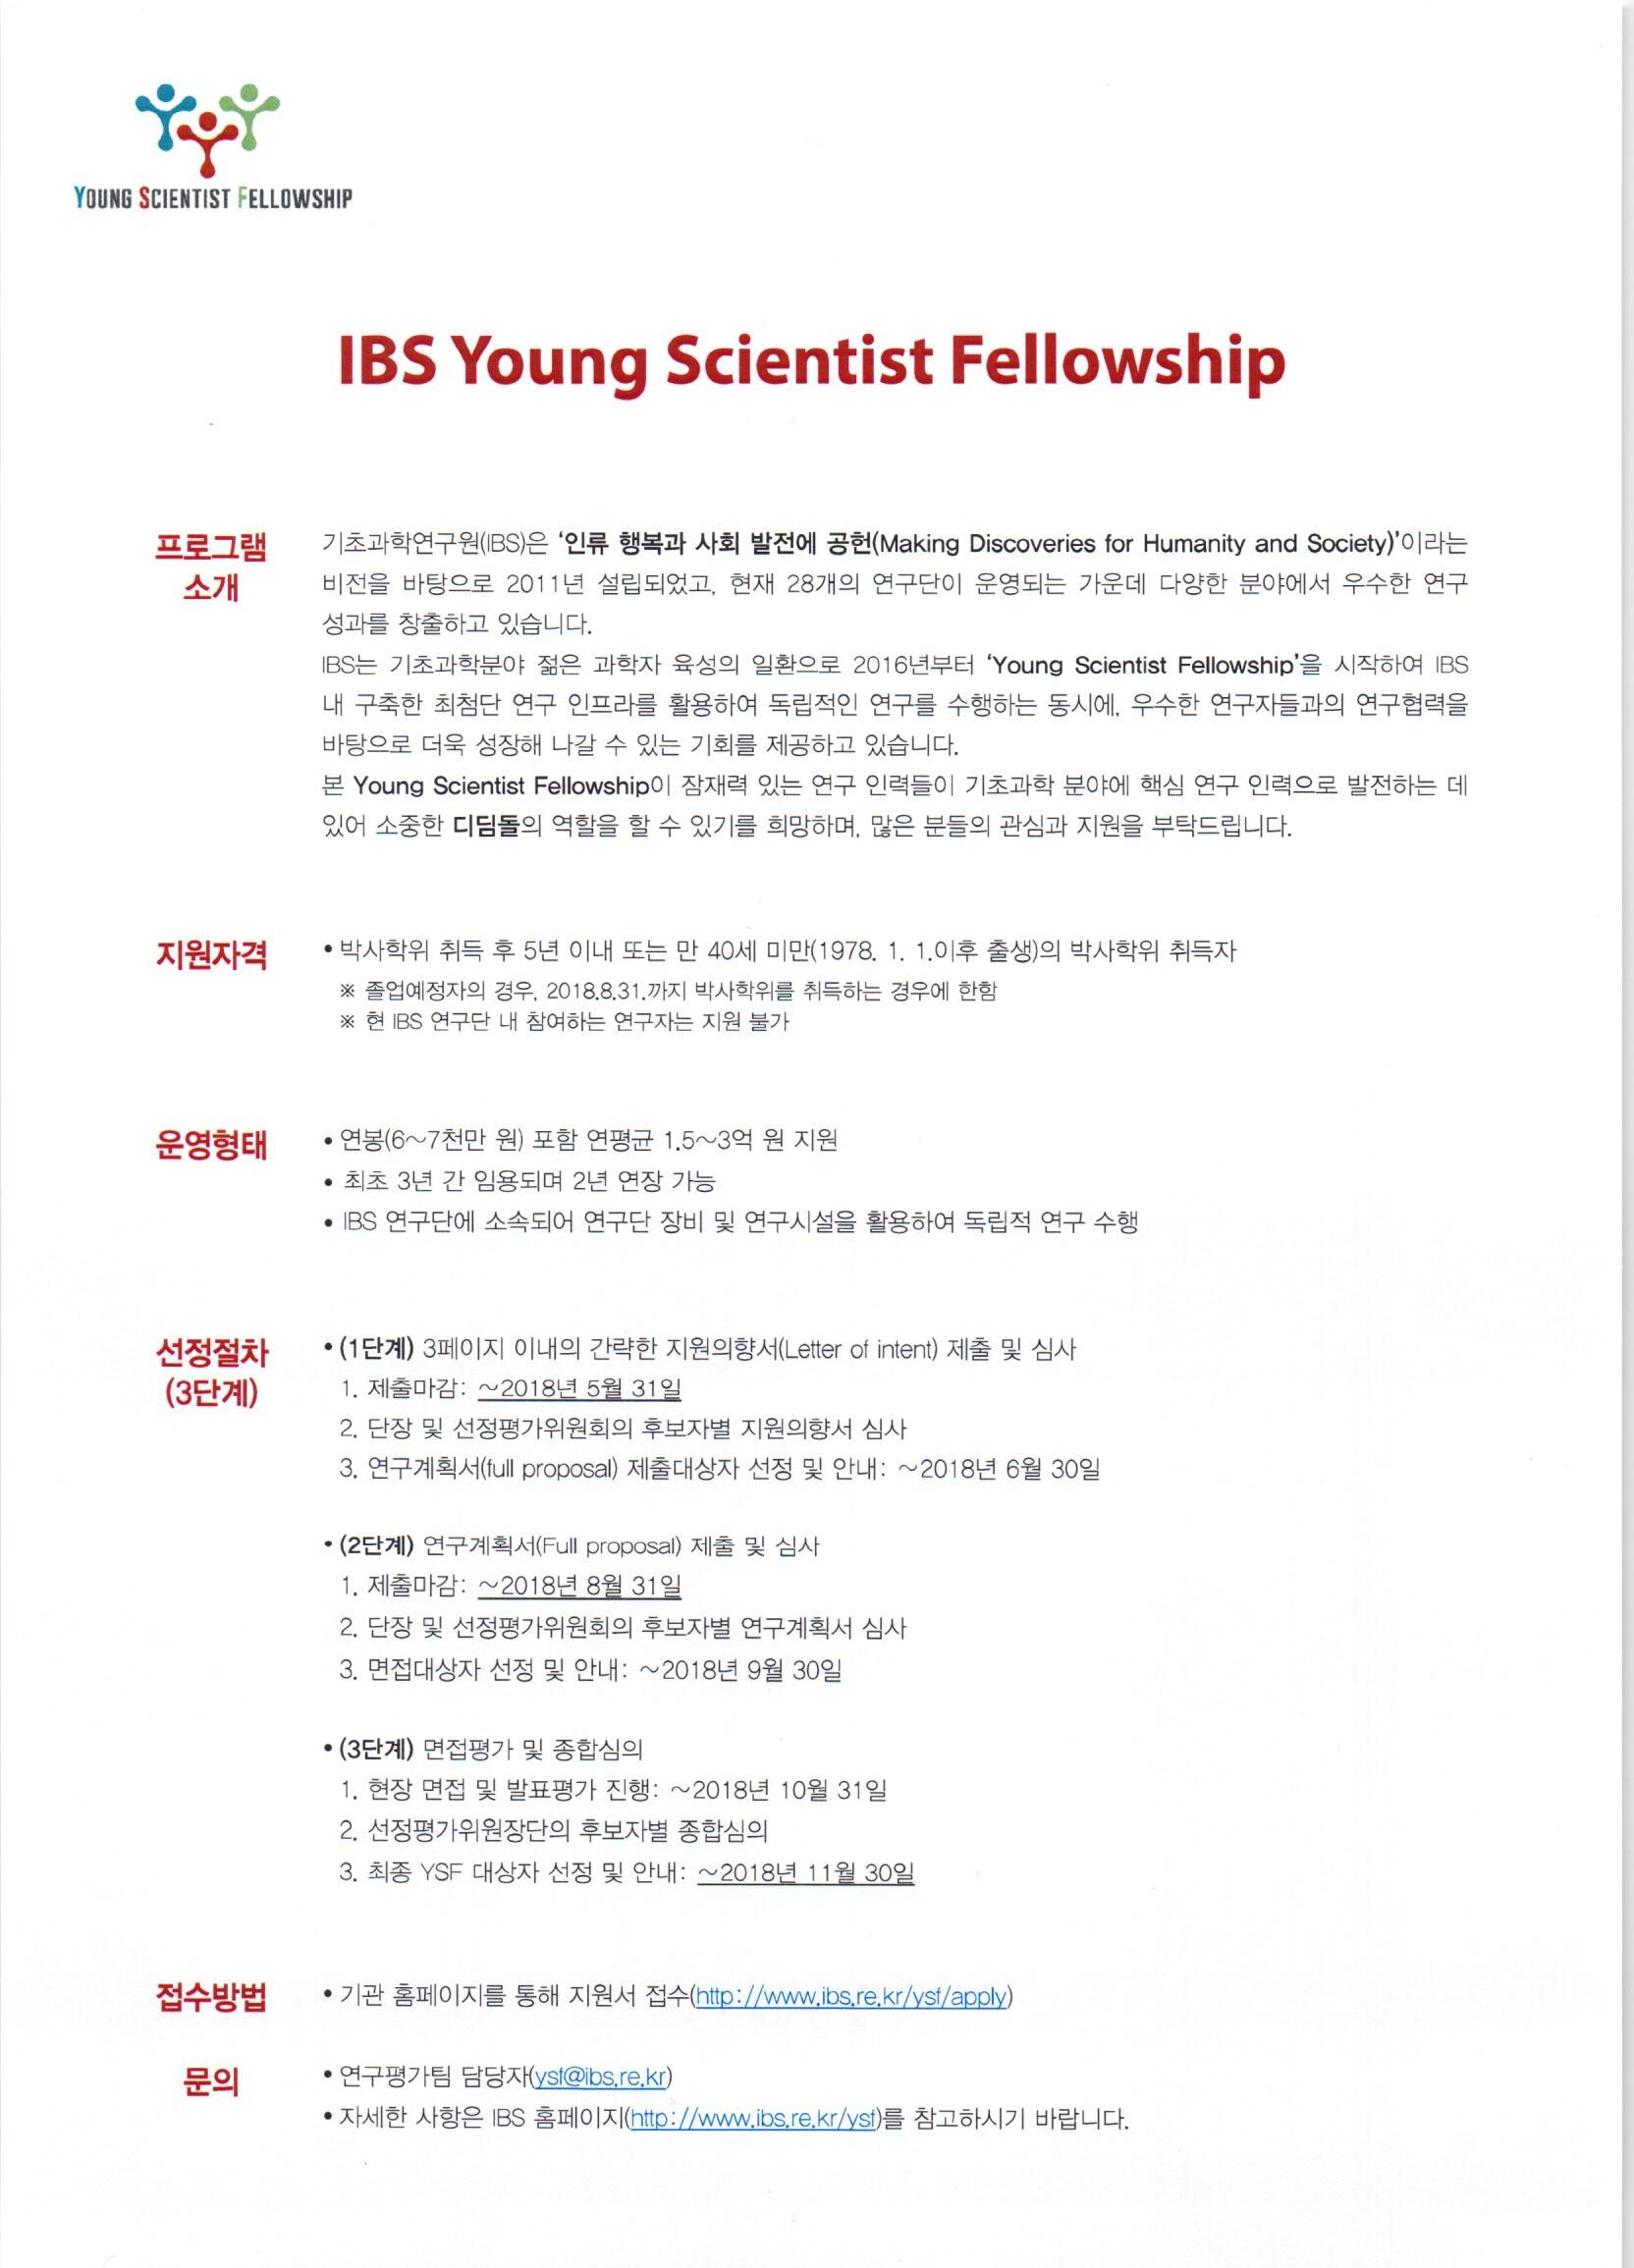 IBS Young Scientist Fellowship Advertisement.jpg